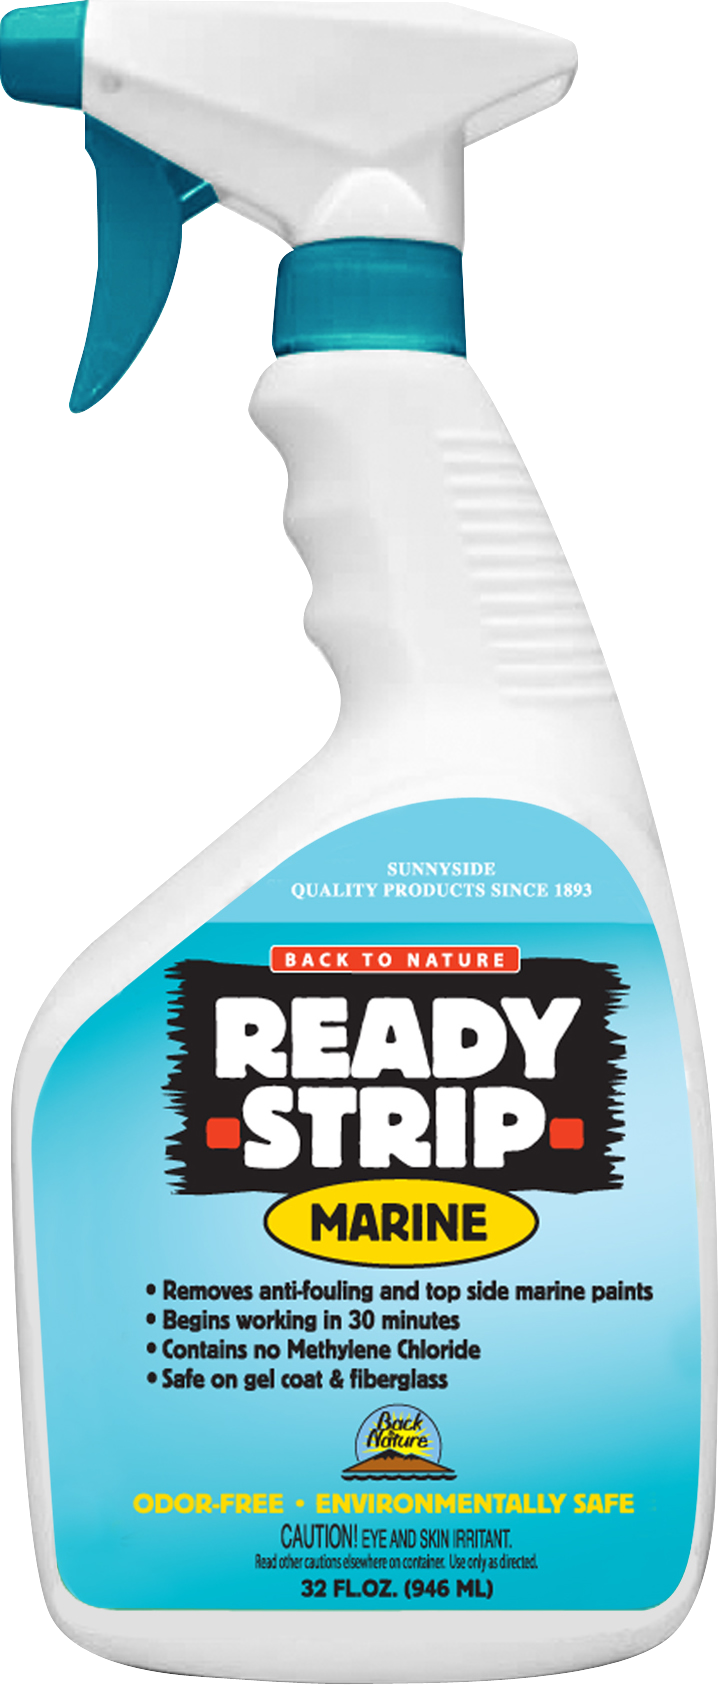 How To Use Back To Nature Ready Strip